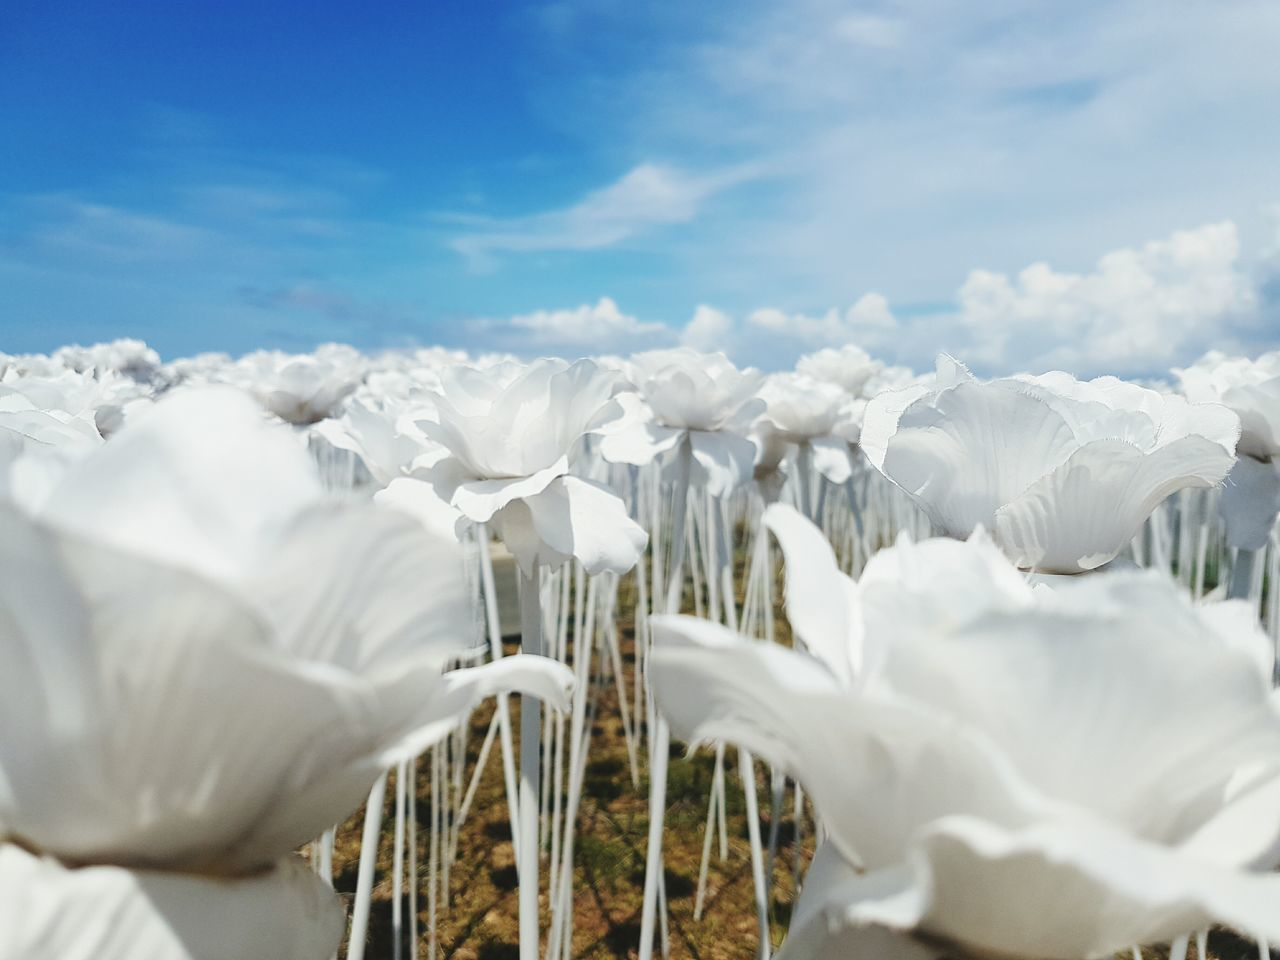 These paper roses seem to touch the sky. So fitting- just like you and I. PaperRoses Paperrose Paperflower Roses Rose🌹 Roses🌹 White Flower Paper Sky Sky And Clouds Clouds Cordova Cebu Love Imitation Imitationflower Imitationlove Unrequitedlove